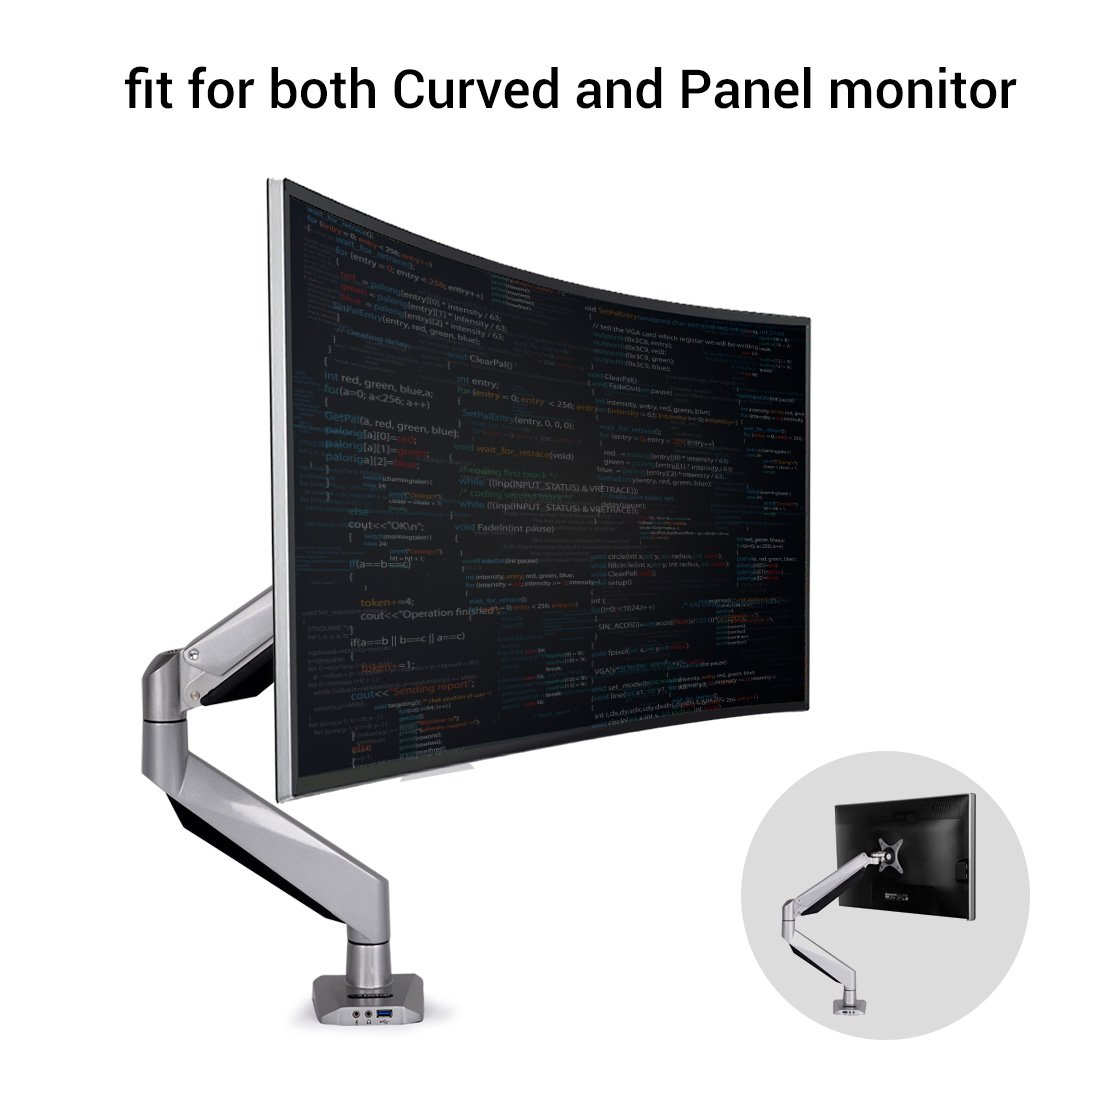 Loctek D7R Monitor Mount fits for both Curved and Panel 10- 34 inch Monitors Gas Spring Desk Top LCD Monitor Arm (D7R ,Weighting 8.8-22 lbs) by Loctek